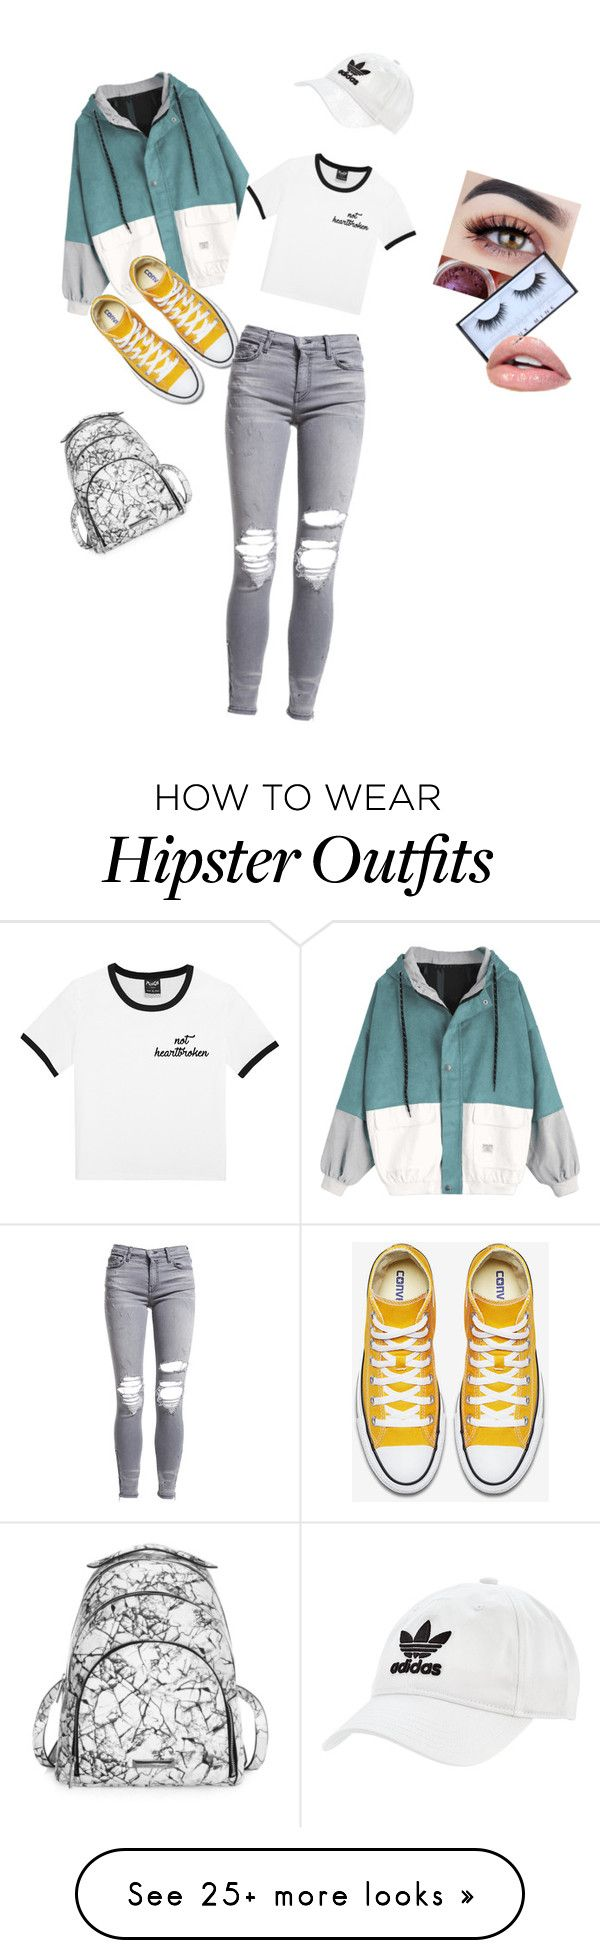 """""""Sporty glam"""" by brynfigg on Polyvore featuring Kendall + Kylie, adidas Originals and AMIRI"""